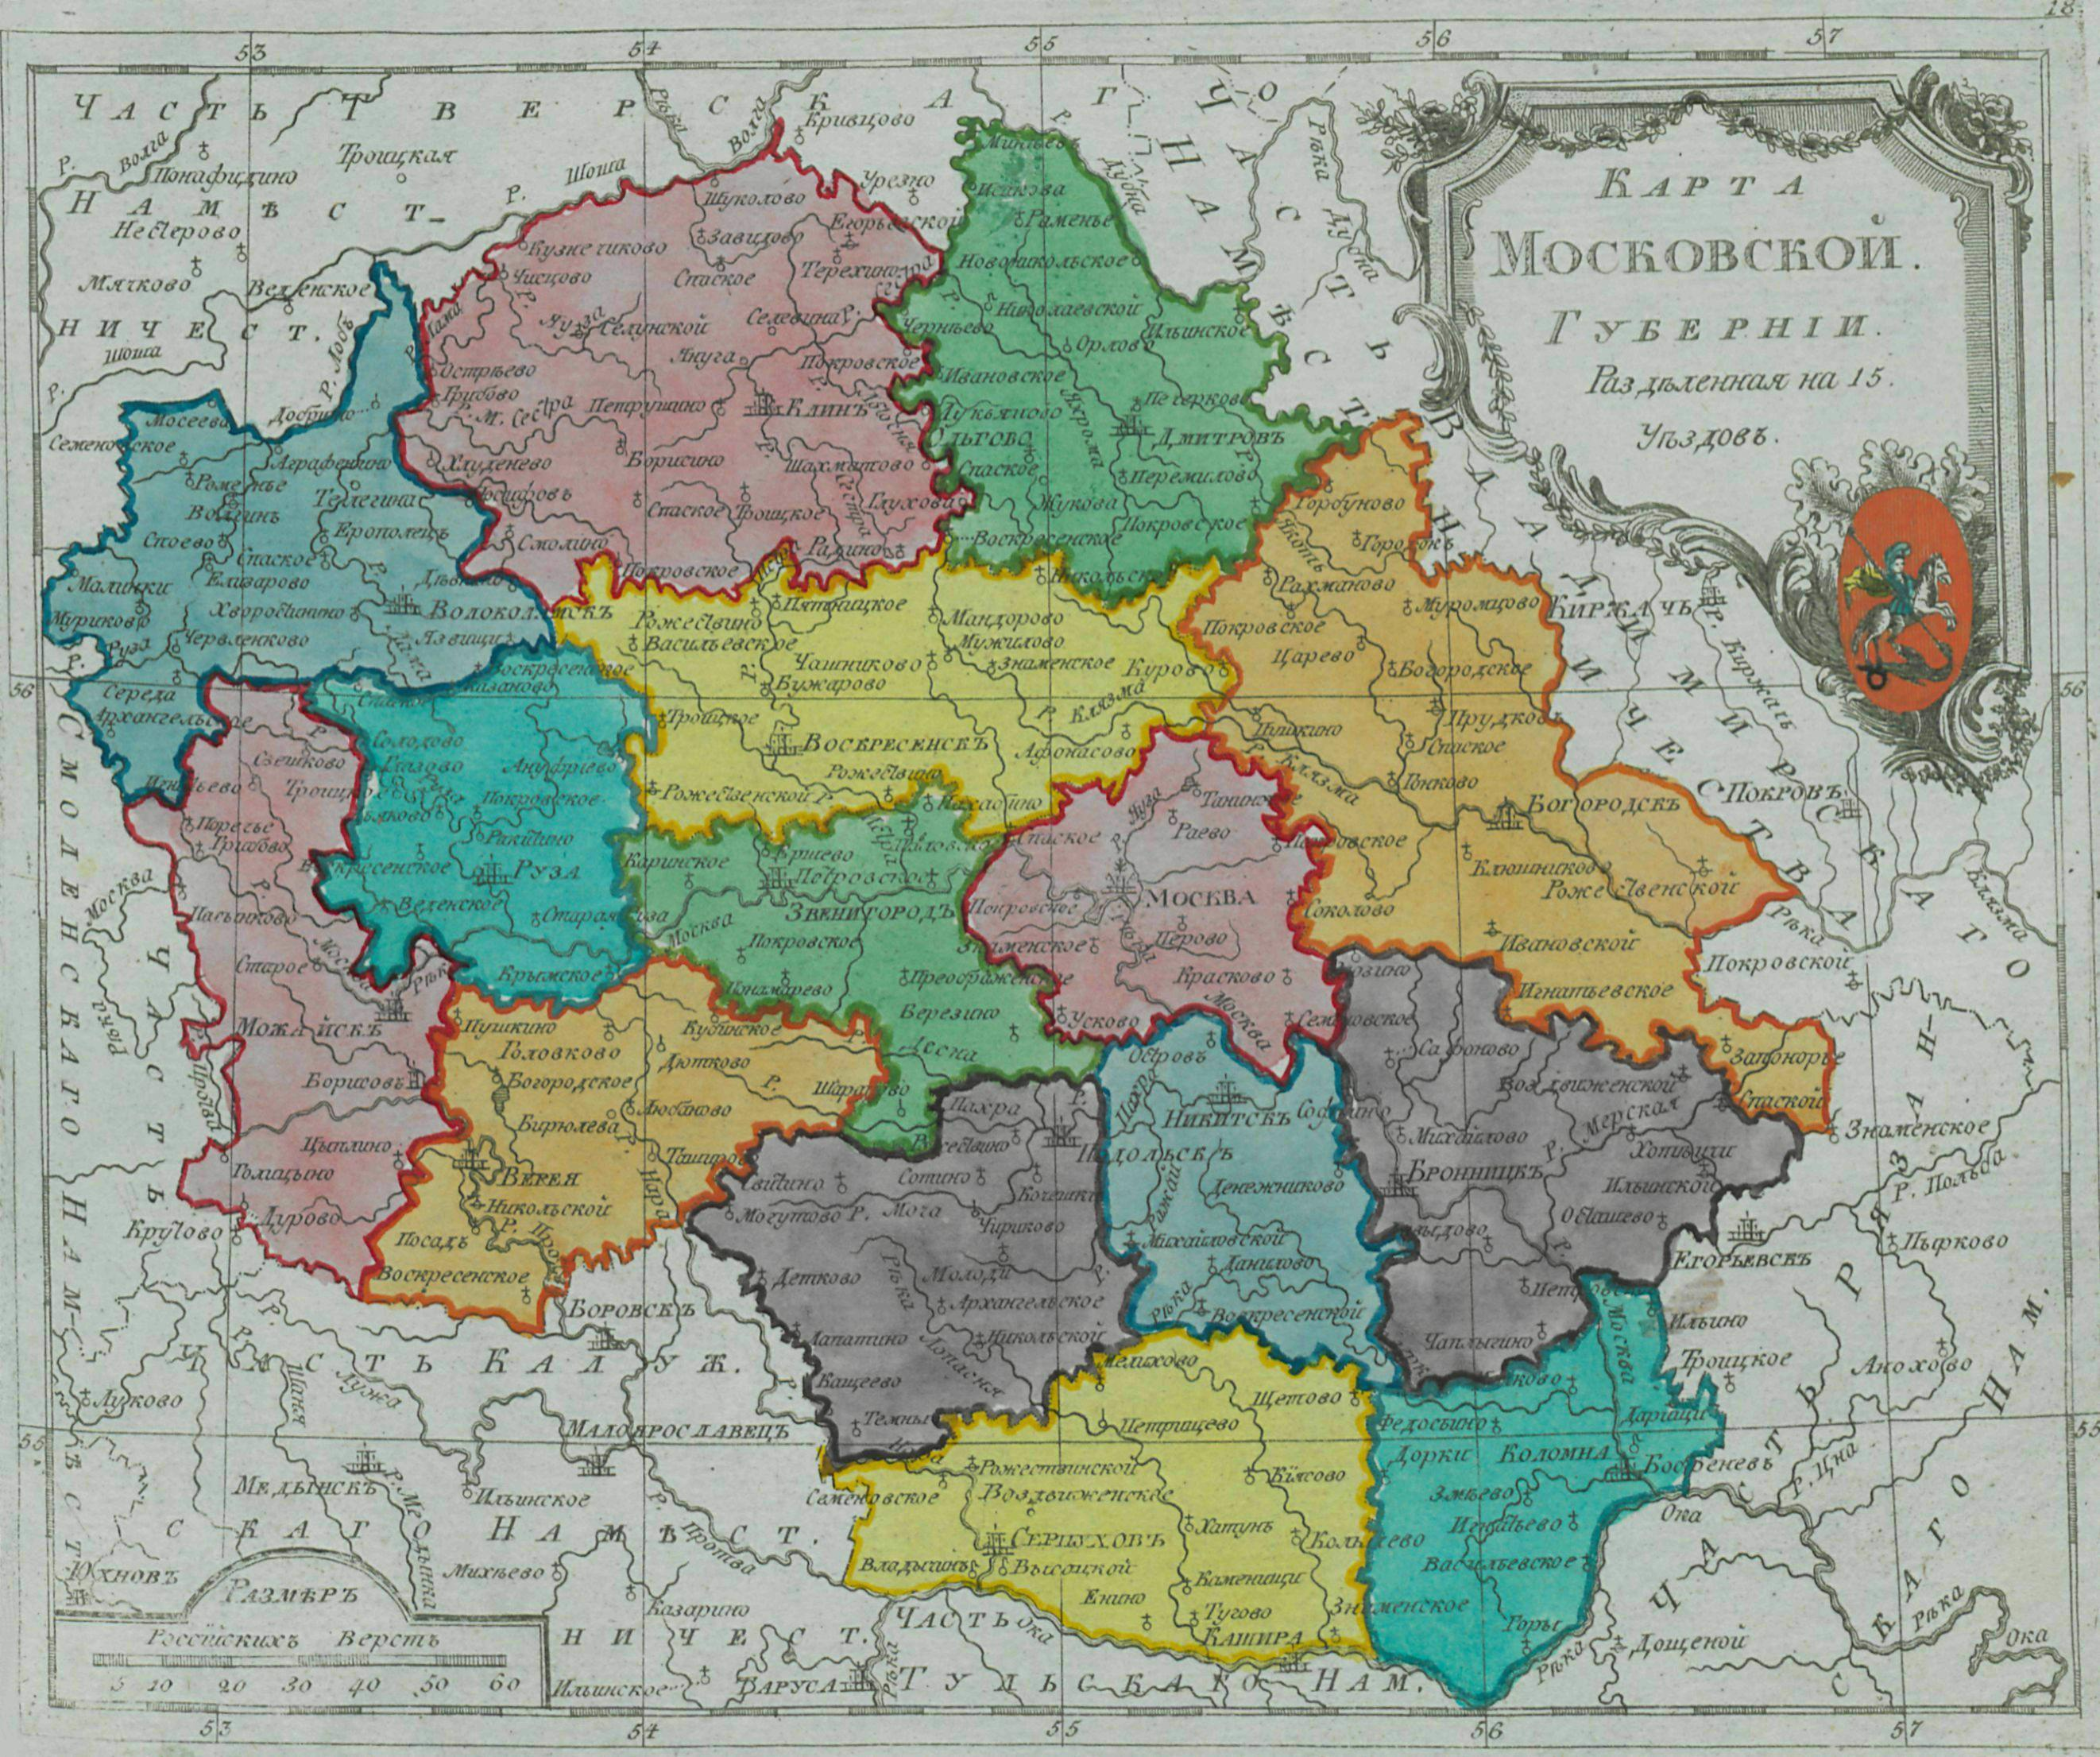 Datei:Map of Moscow Governorate 1792 (small atlas).jpg – Wikipedia